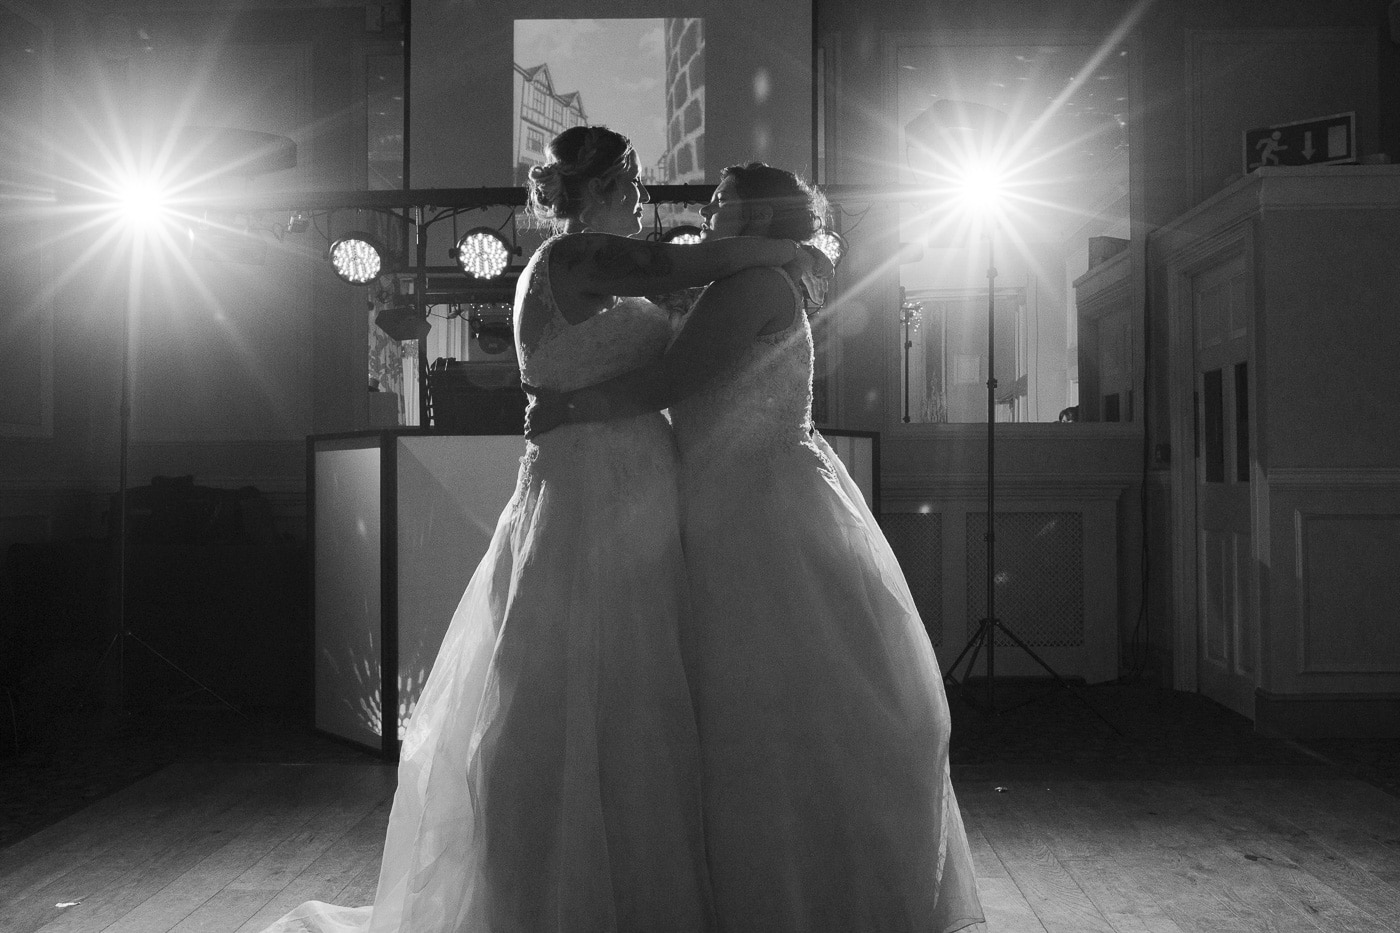 Two brides dancing for wedding photography by Joshua Wyborn